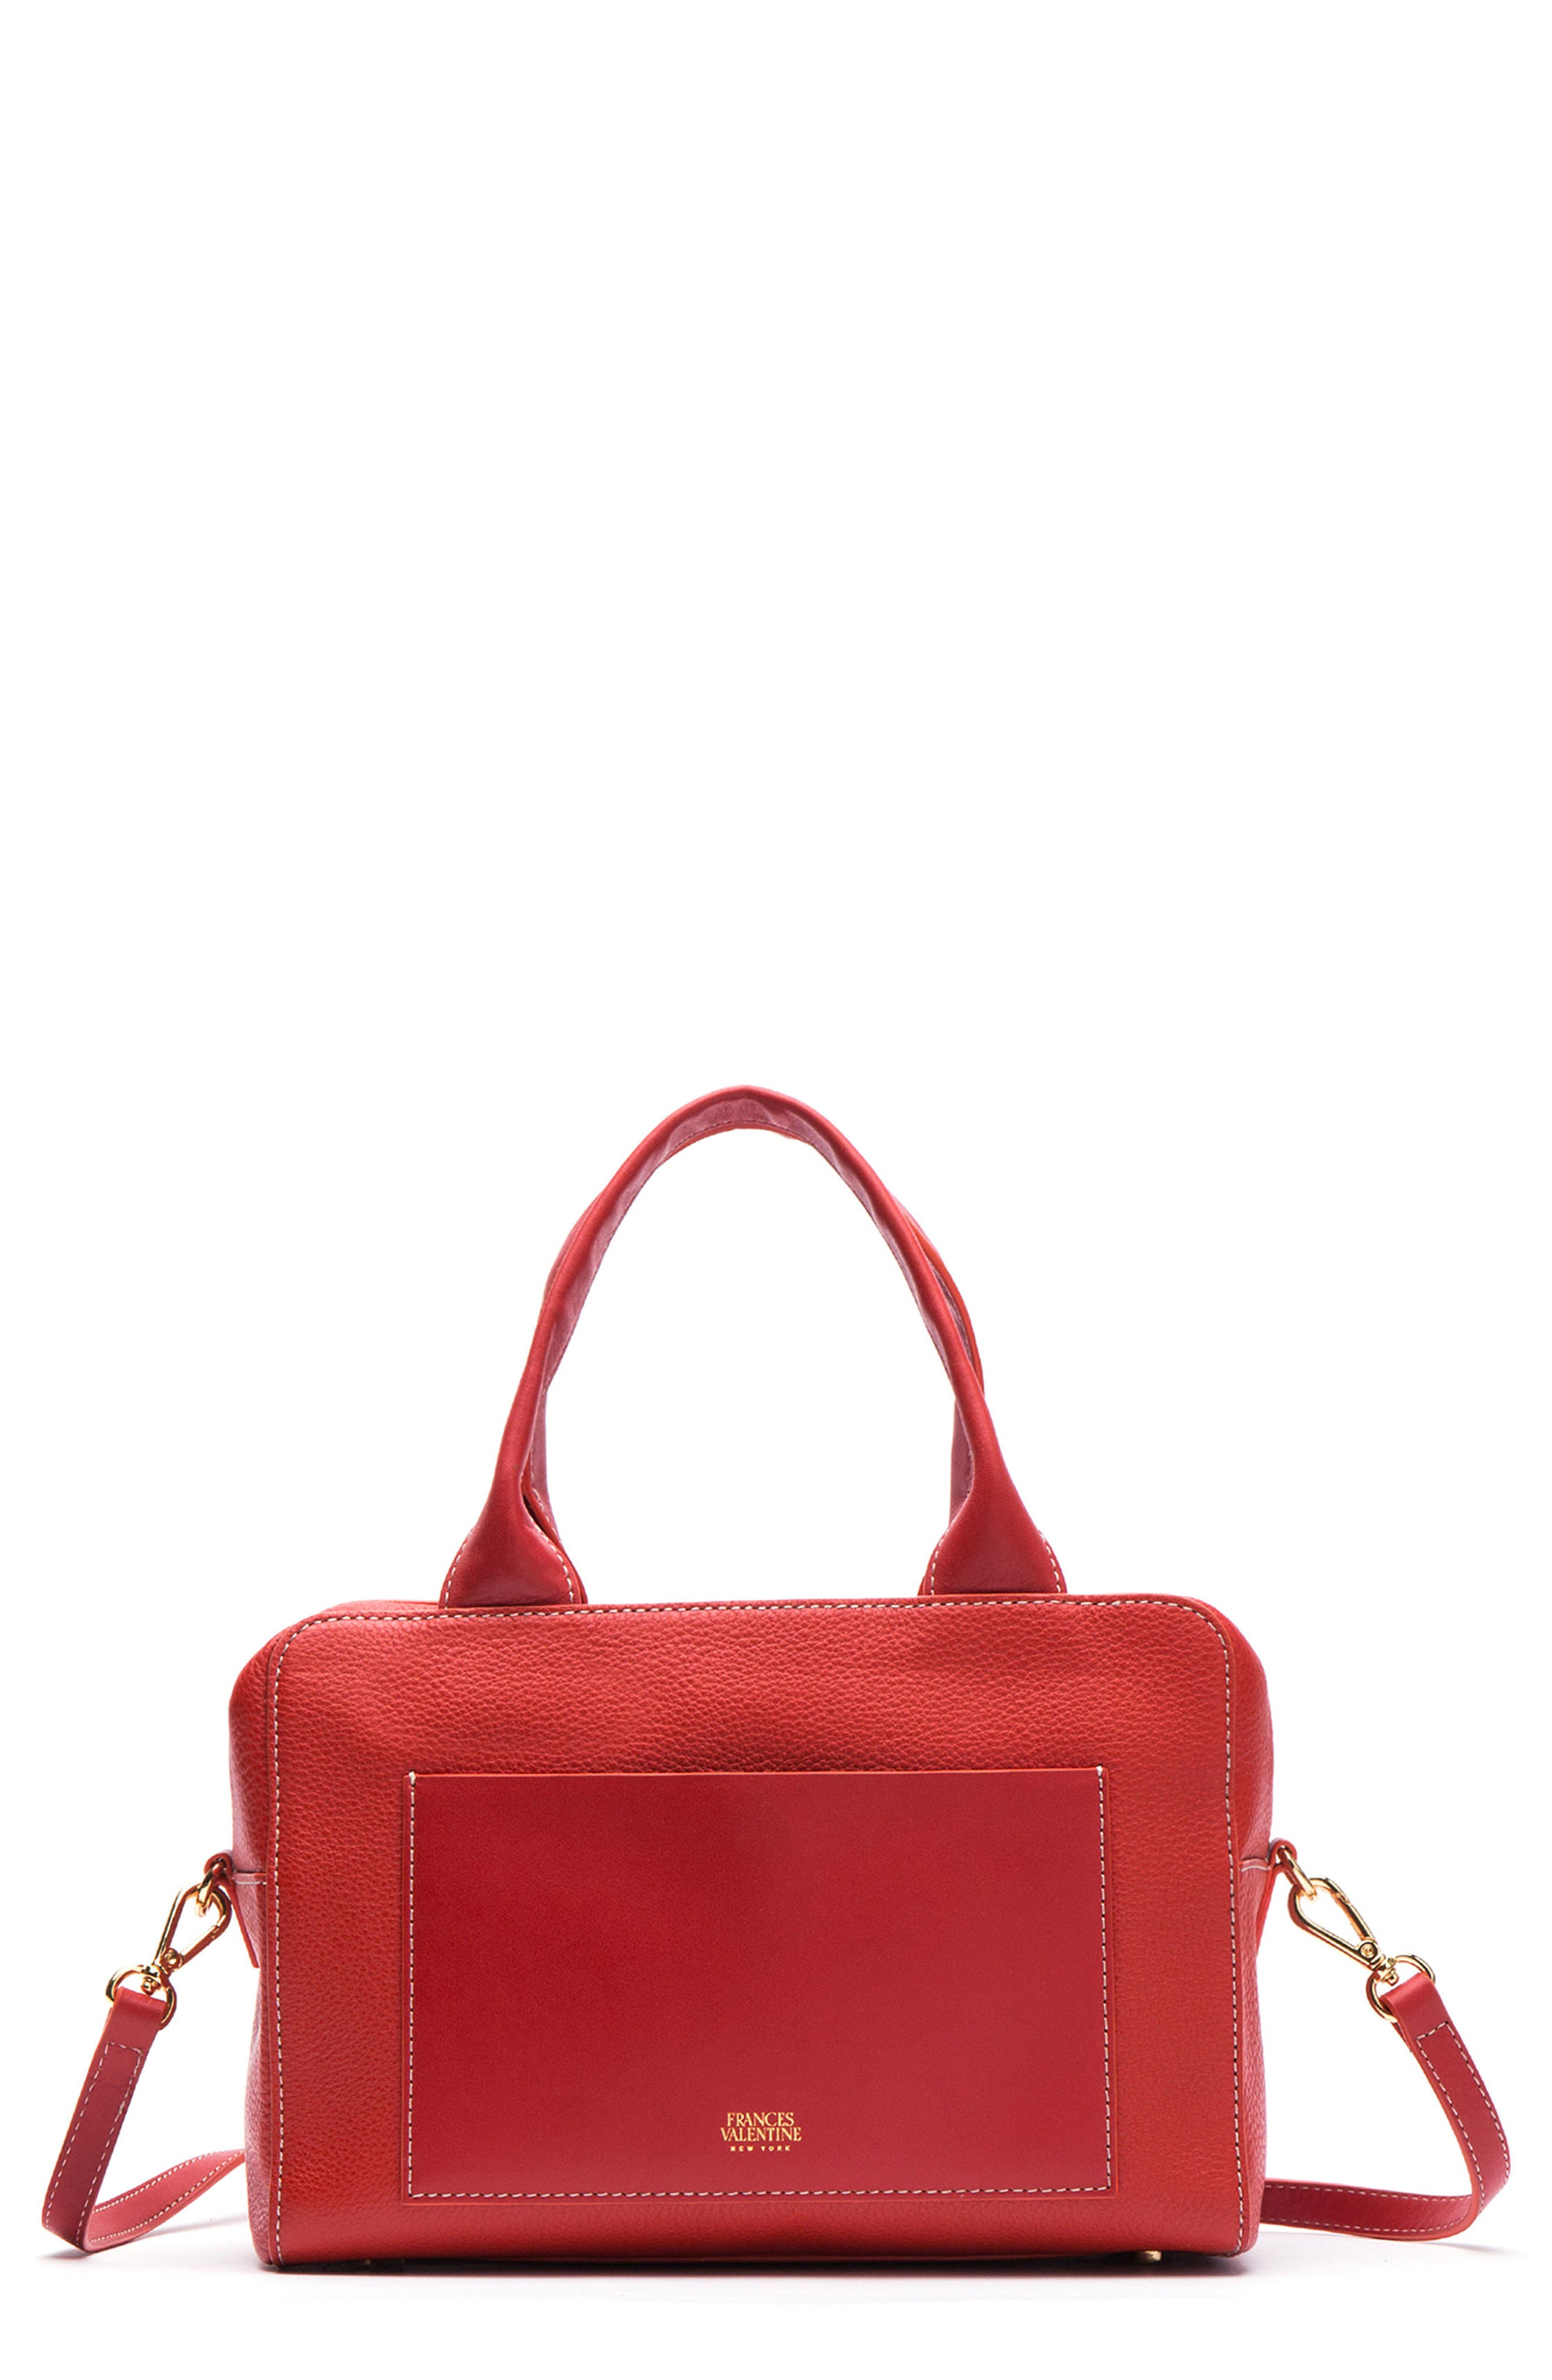 Medium Maddy Satchel,                             Main thumbnail 1, color,                             Coral